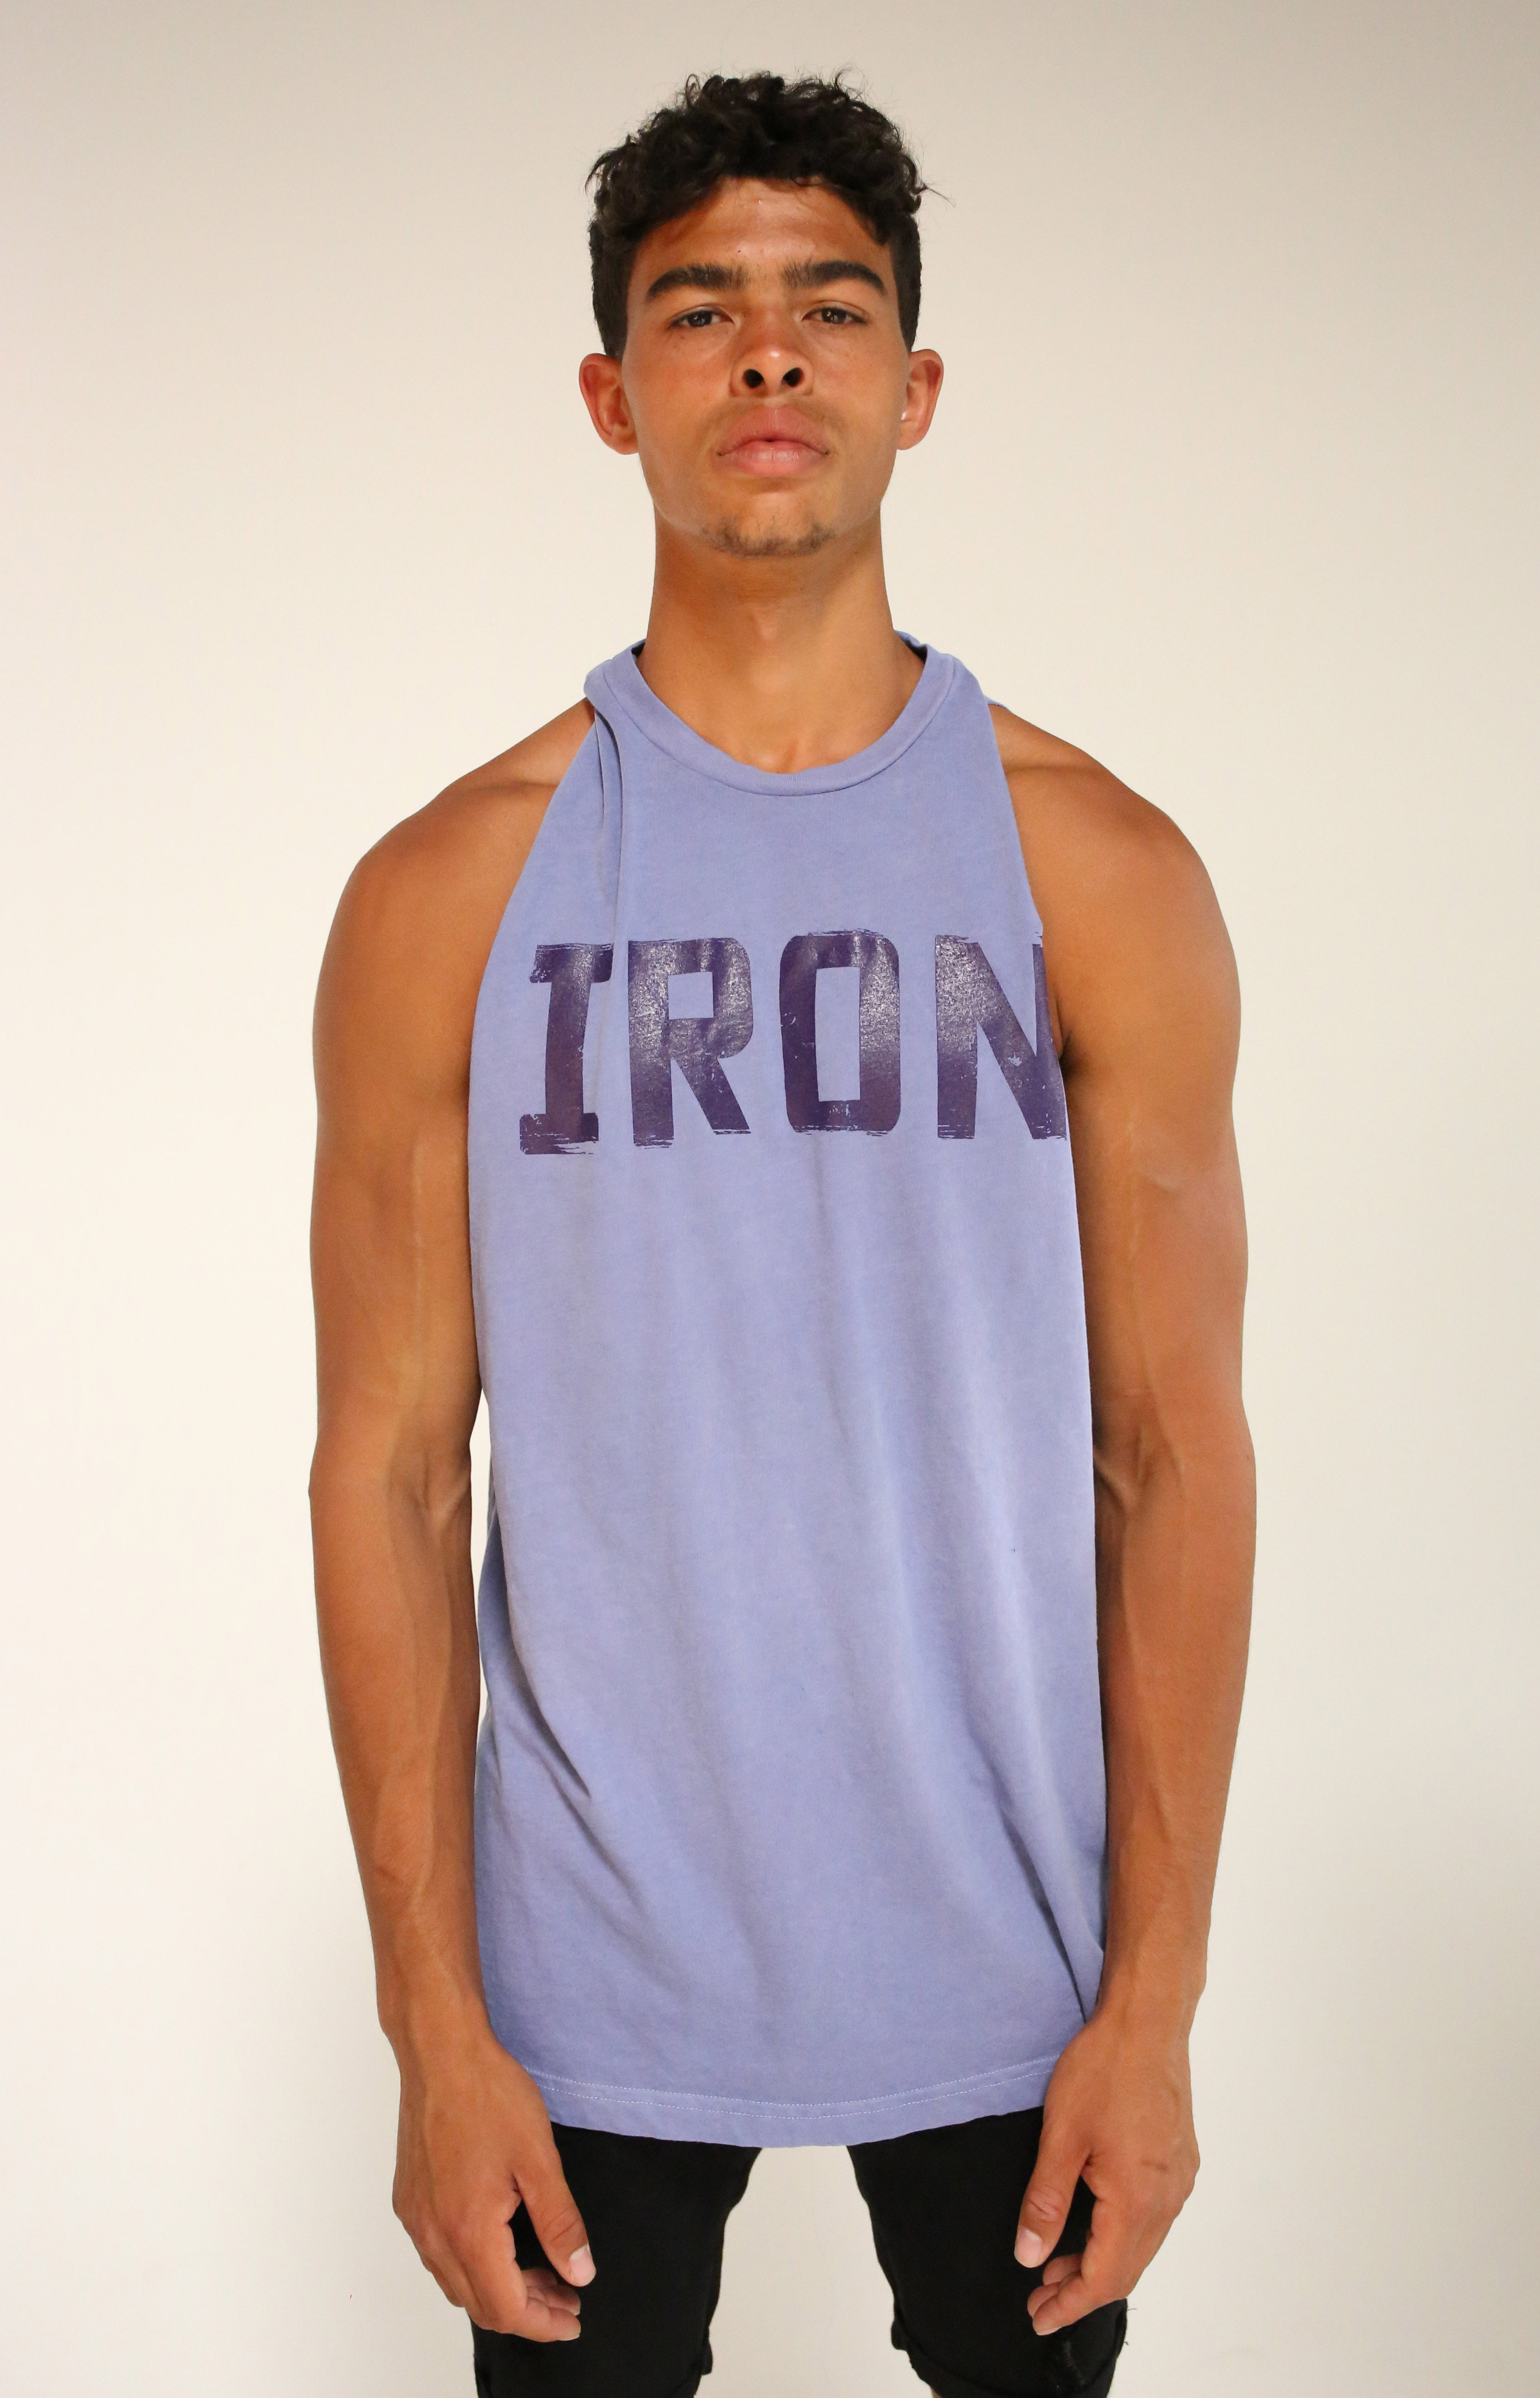 Oversized Faded Purple Iron Muscle Tank